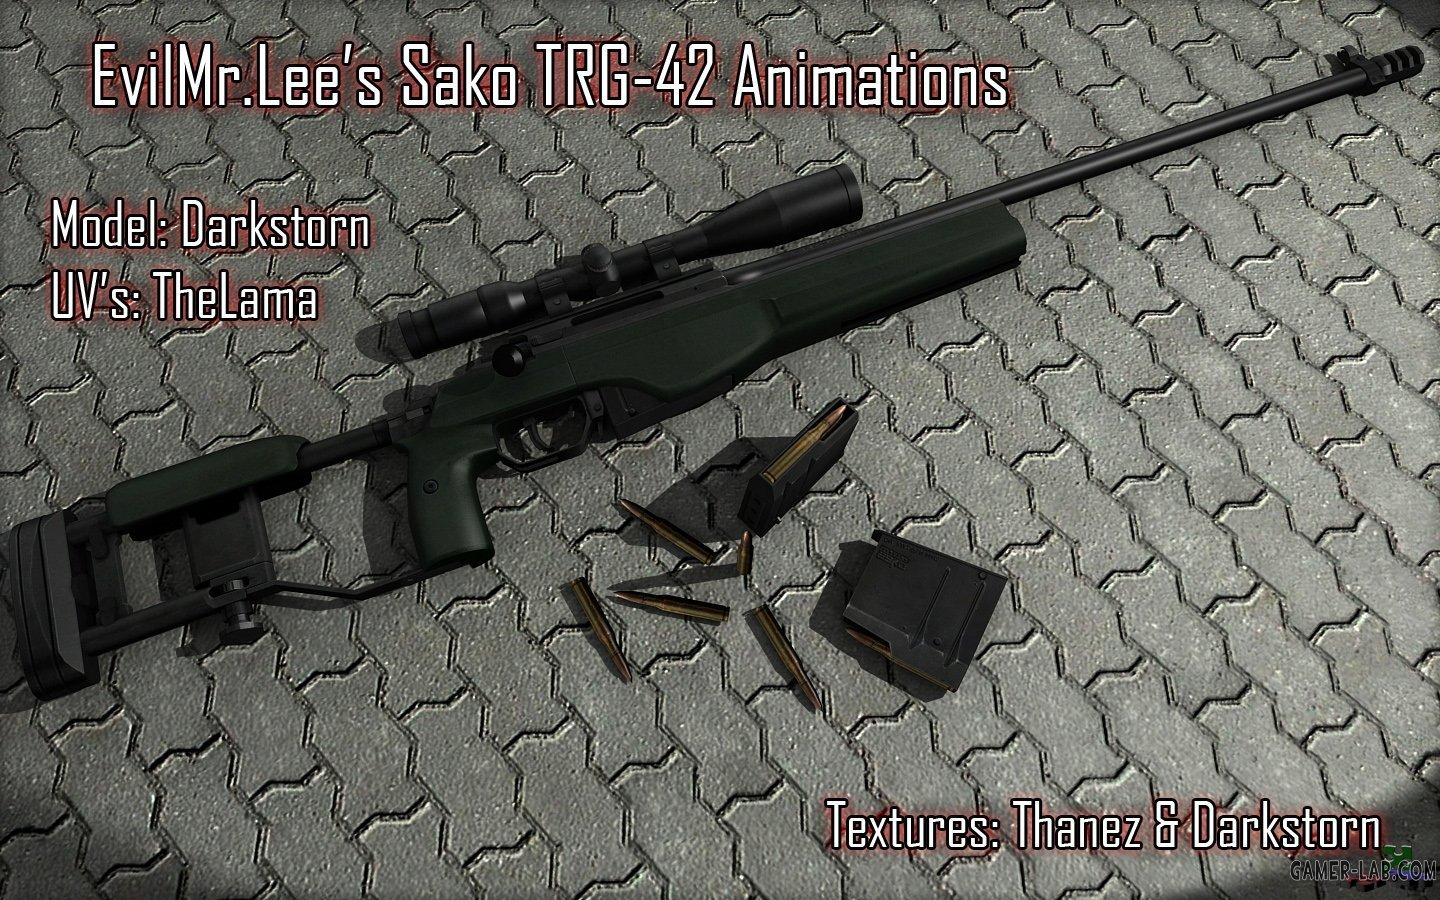 Sako TRG-42 Animations